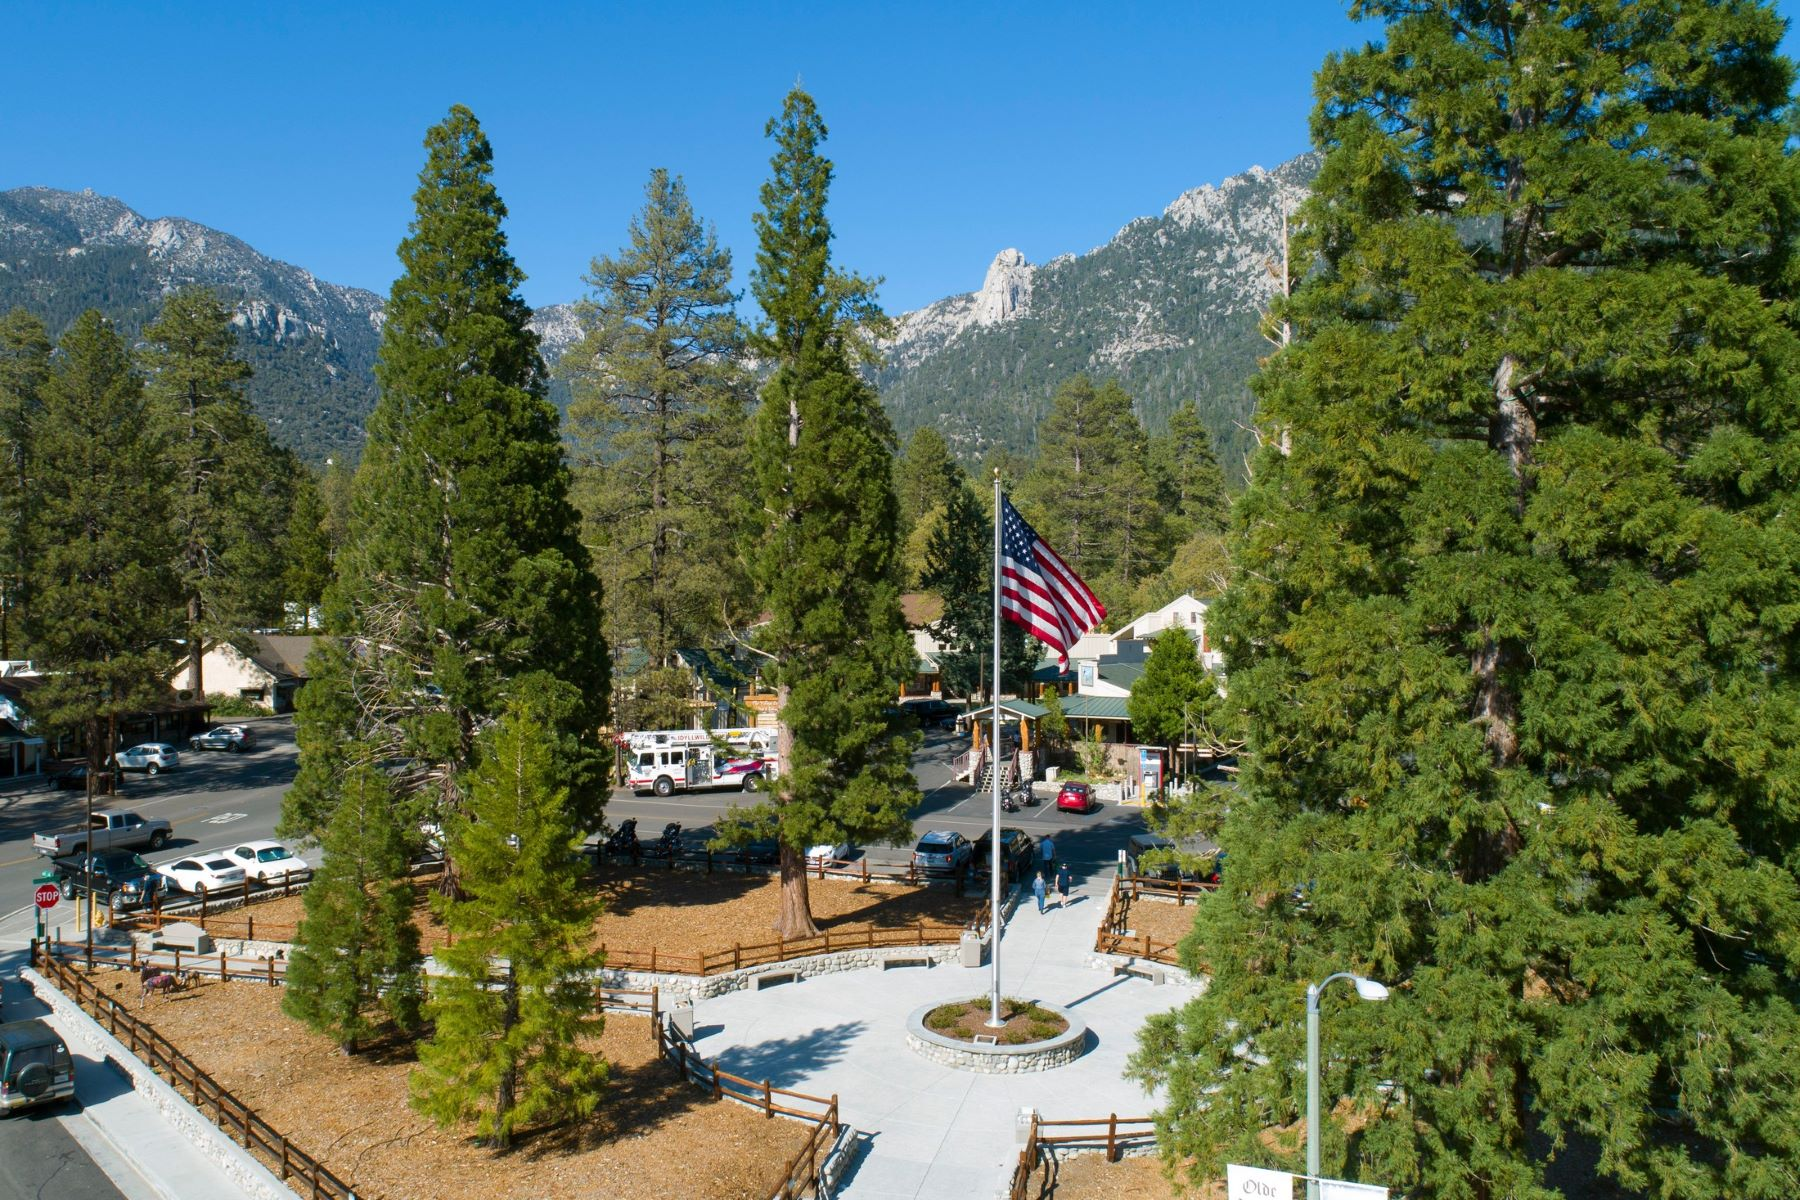 Single Family Homes for Sale at 55045 Strong Drive Idyllwild, California 92549 United States